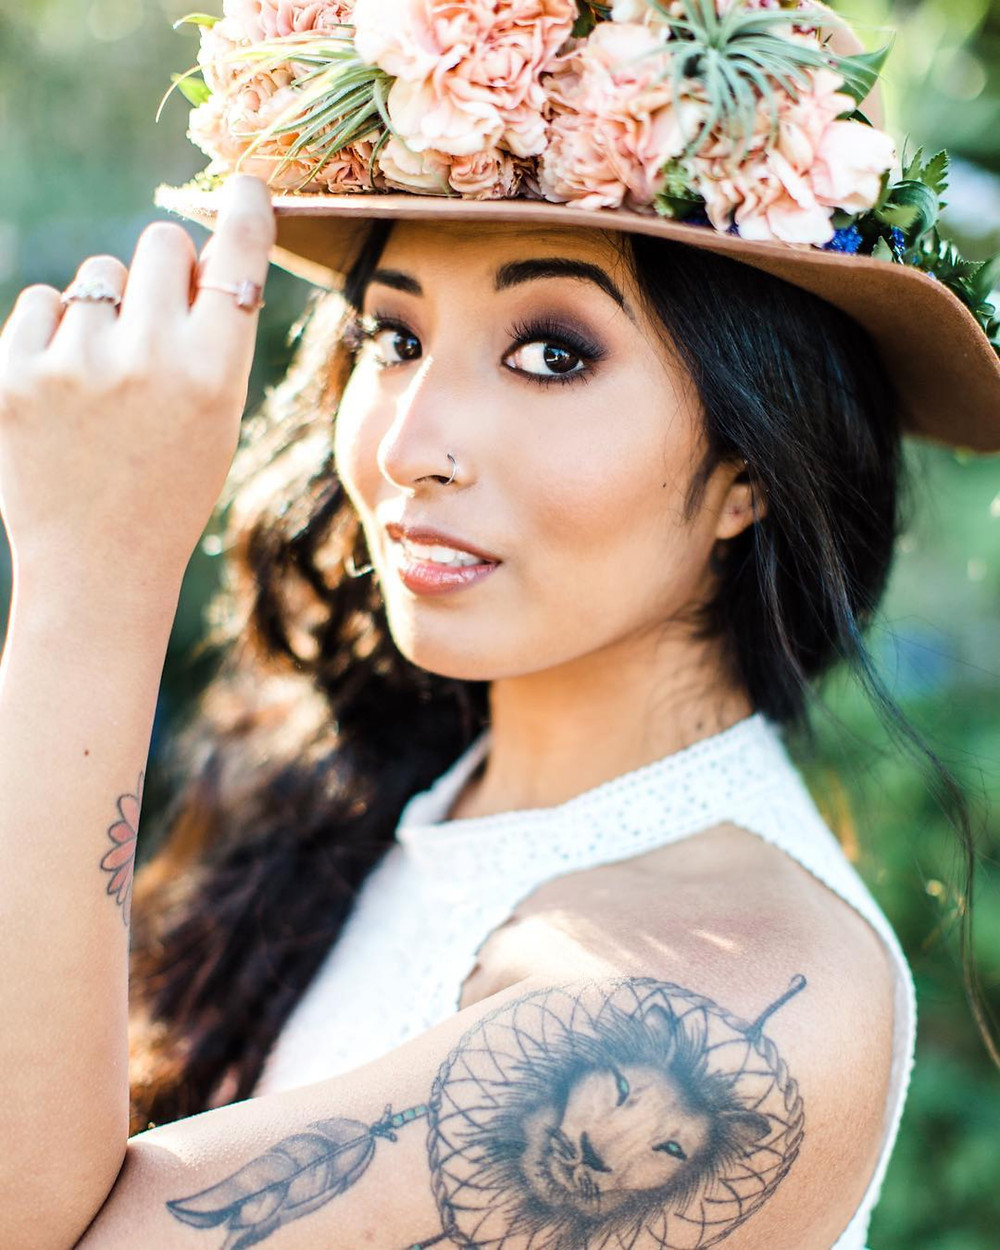 The wedding floppy hat styled with florals by The Bloom Bar Co.